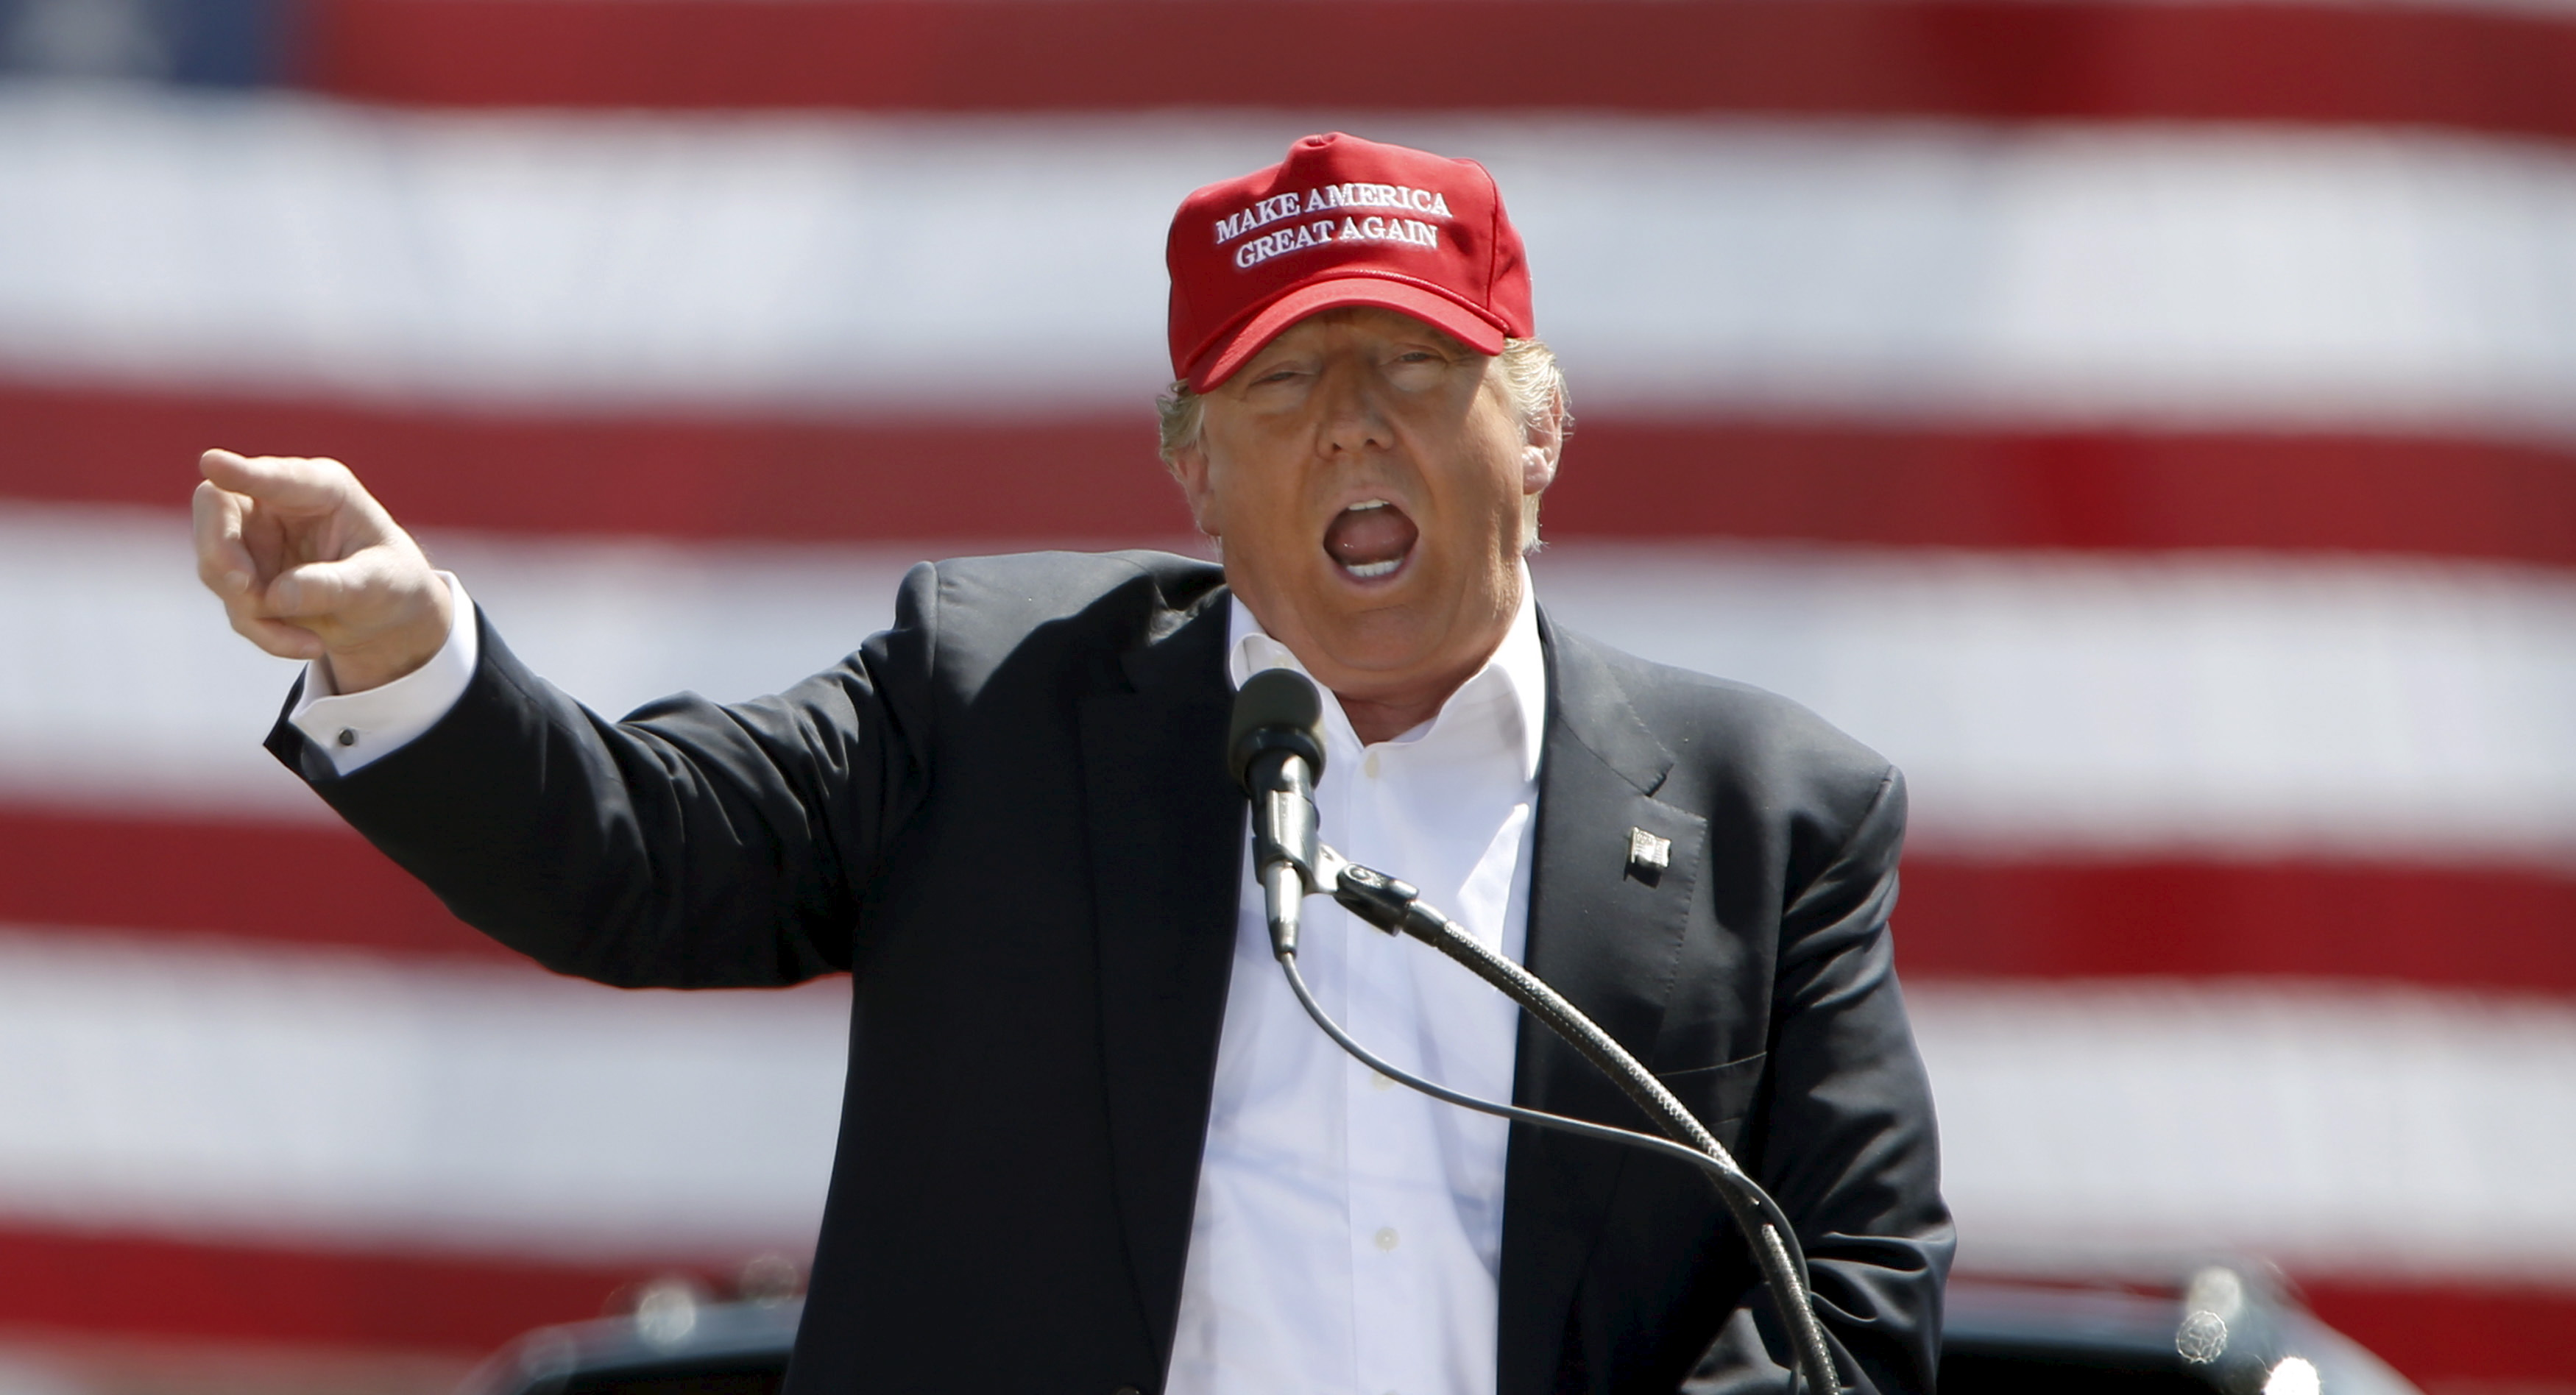 Republican U.S. presidential candidate Trump speaks at a campaign rally in Fountain Hills